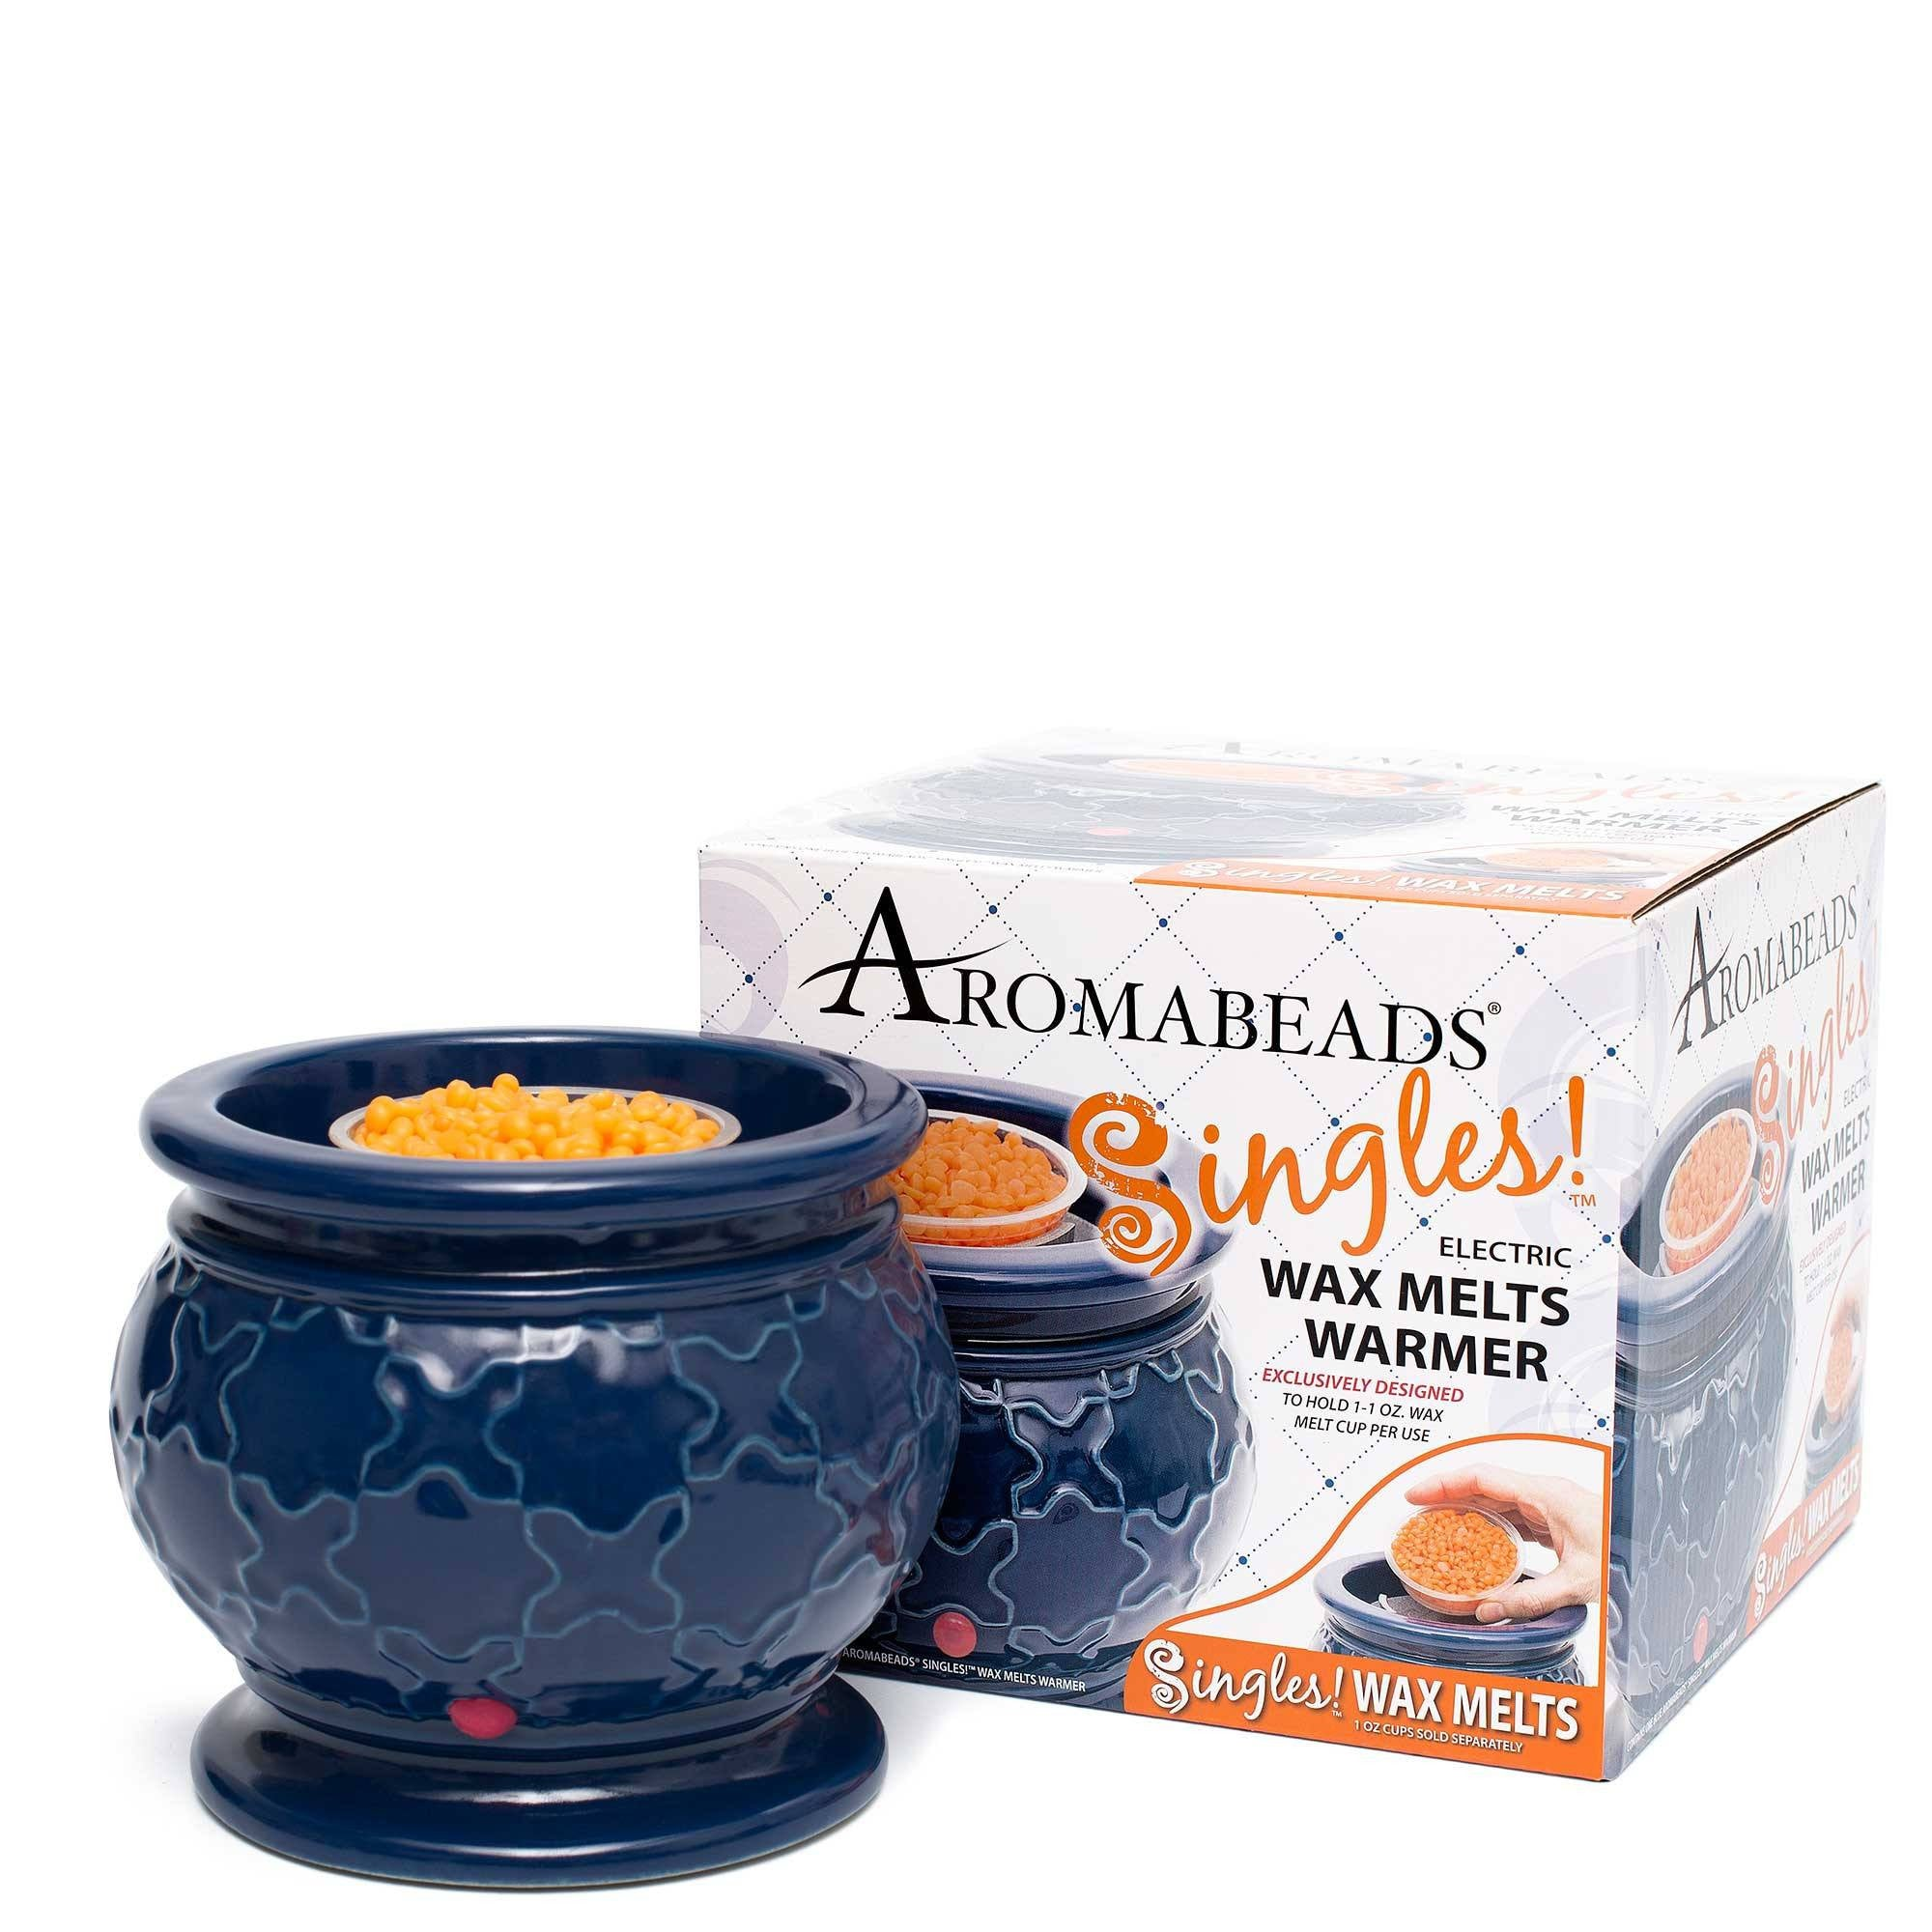 Aromabeads Singles Blush Strawberry Scented Wax Melts - Candlemart.com - 3